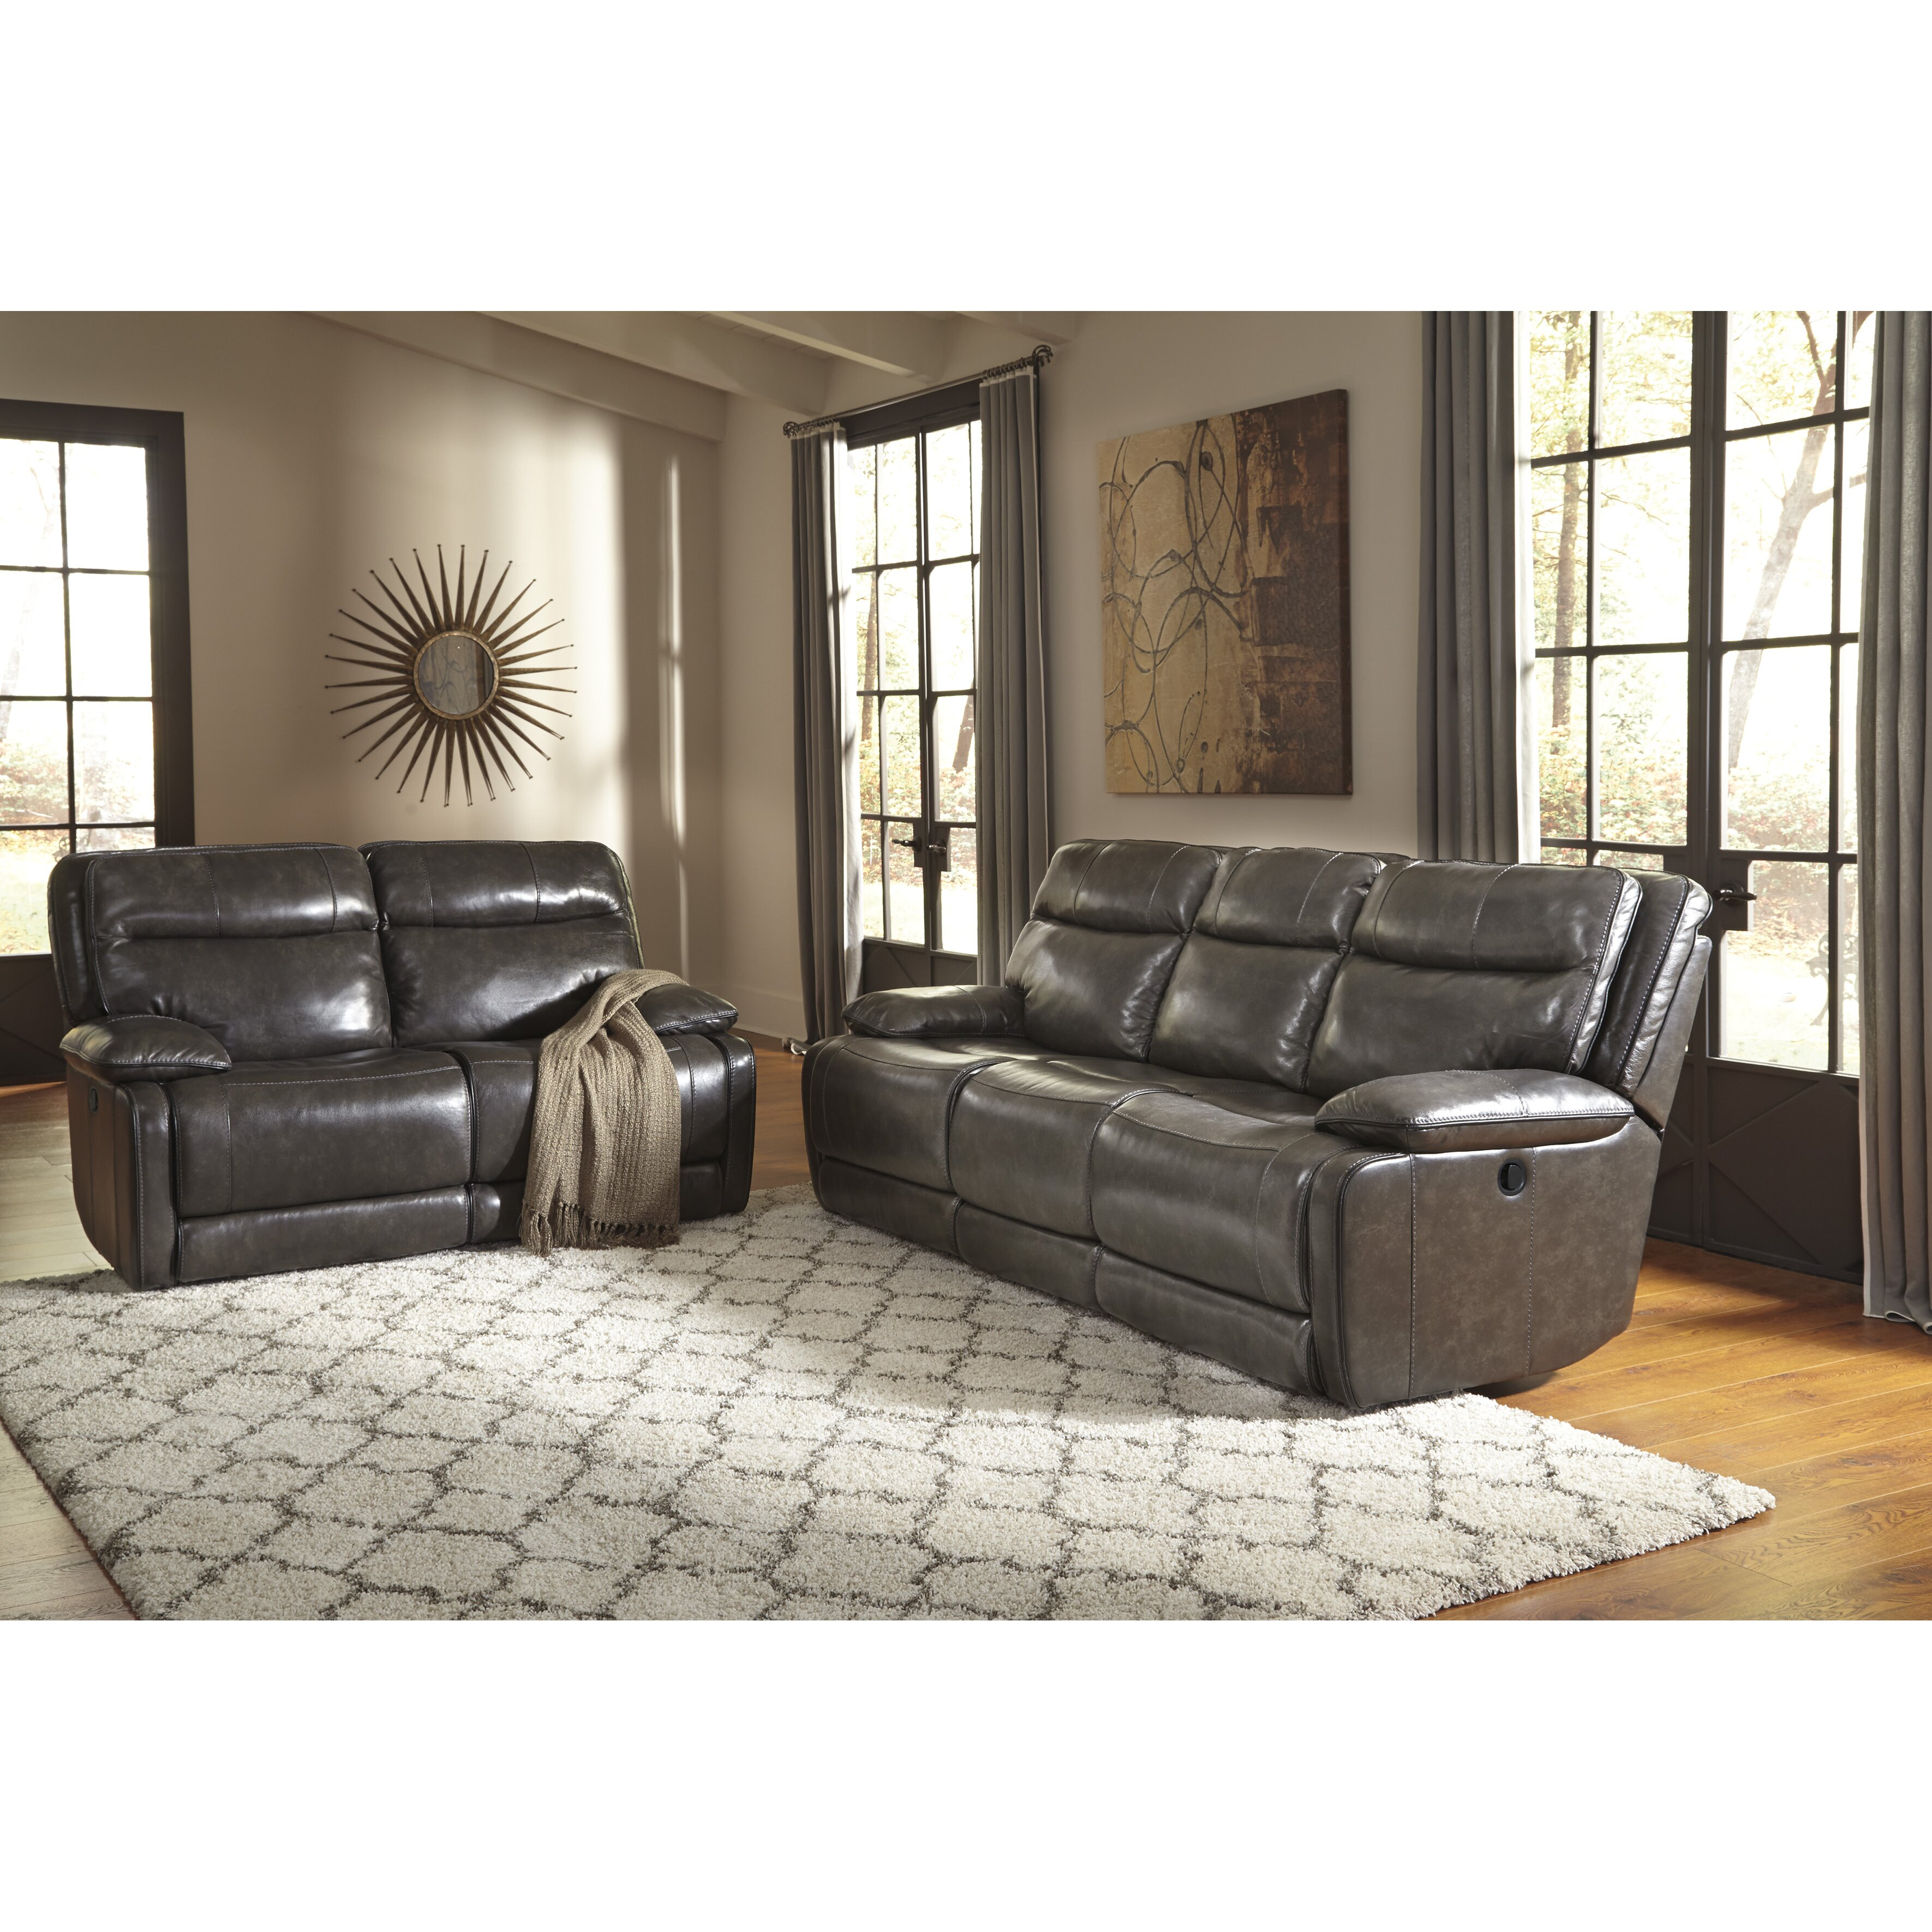 Signature Design by Ashley Leather Reclining Sofa | Wayfair